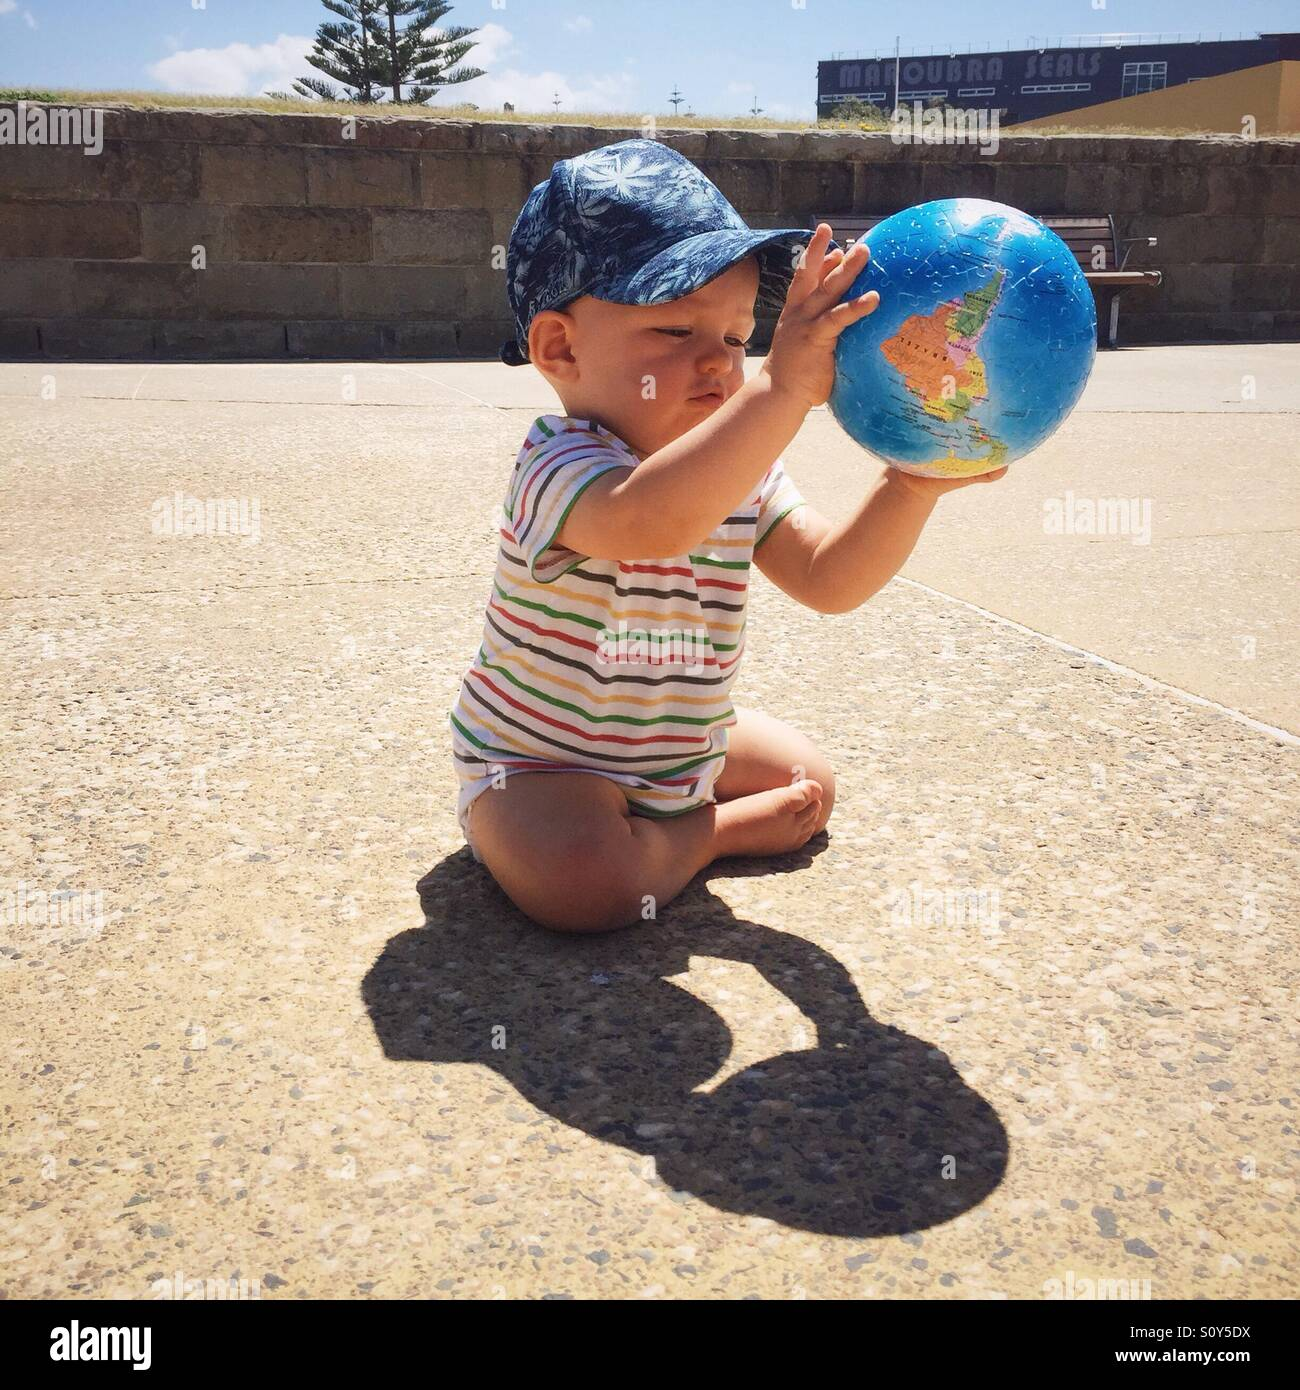 Enfant jouant avec globe ball Photo Stock